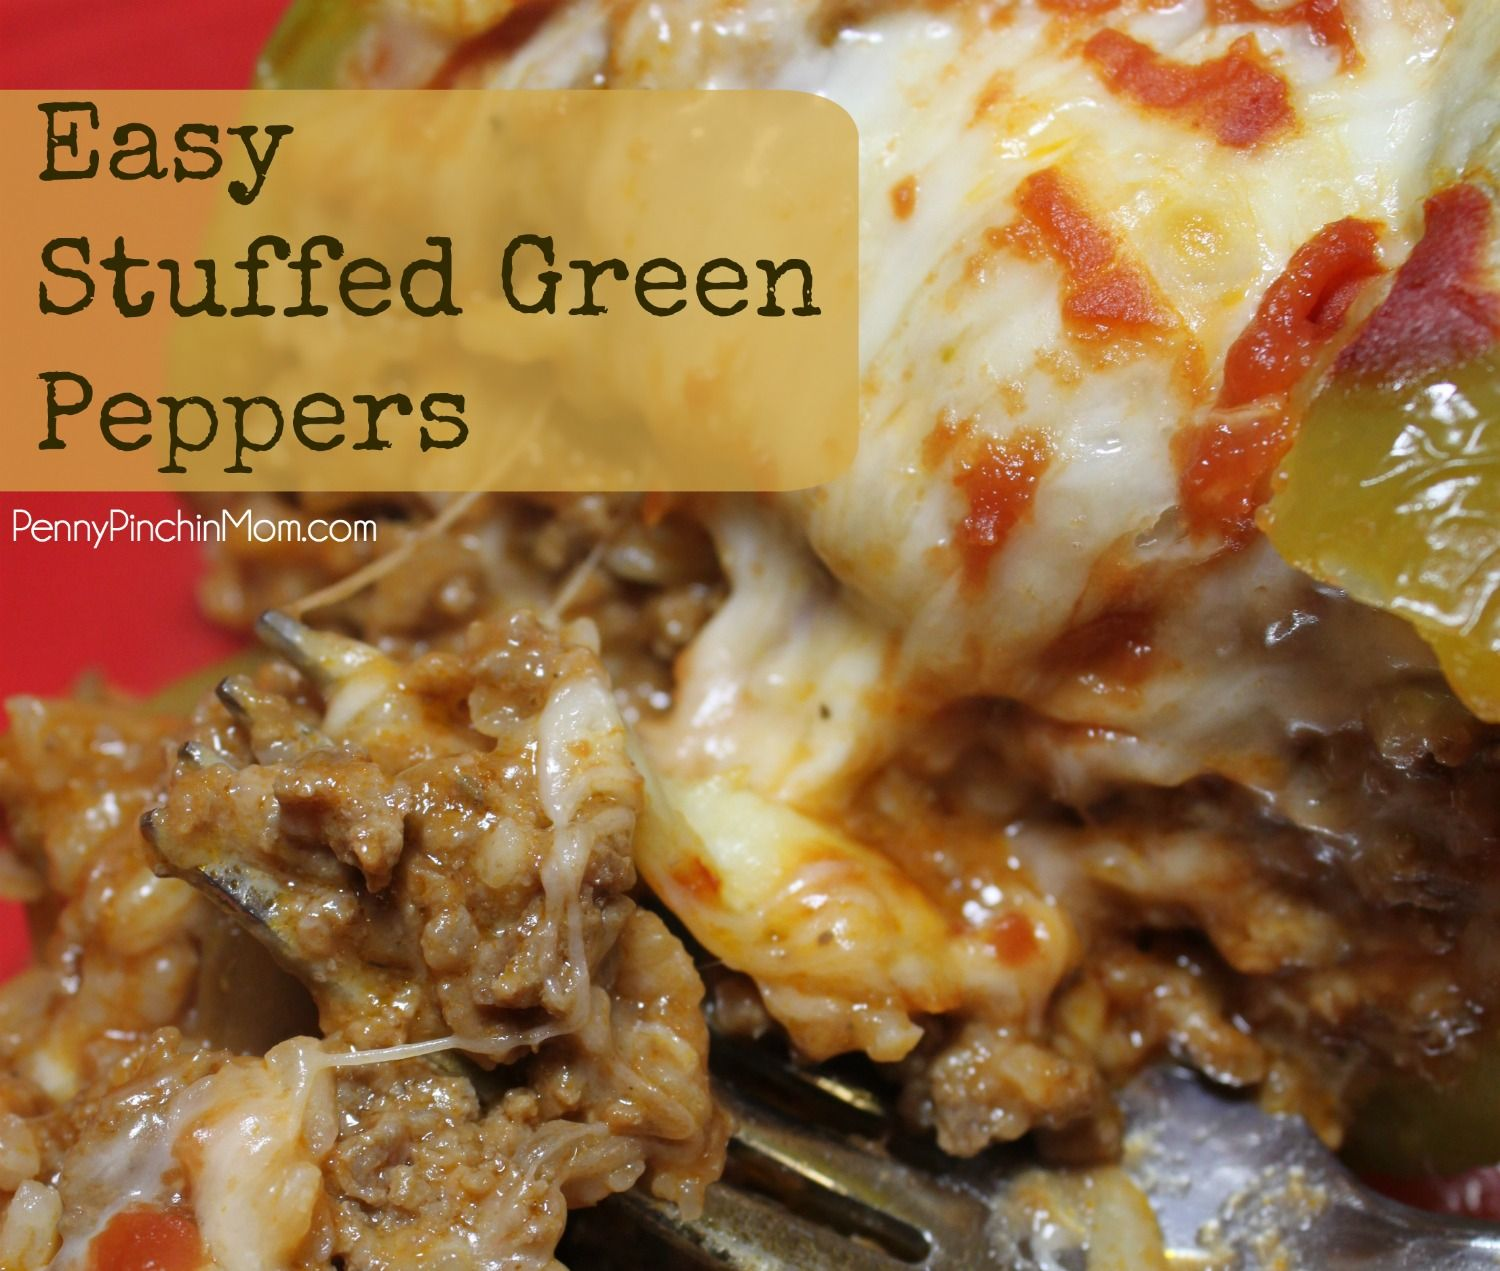 70 Drool Worthy Ground Beef Recipes That Will Make You: Stuffed Peppers, Easy